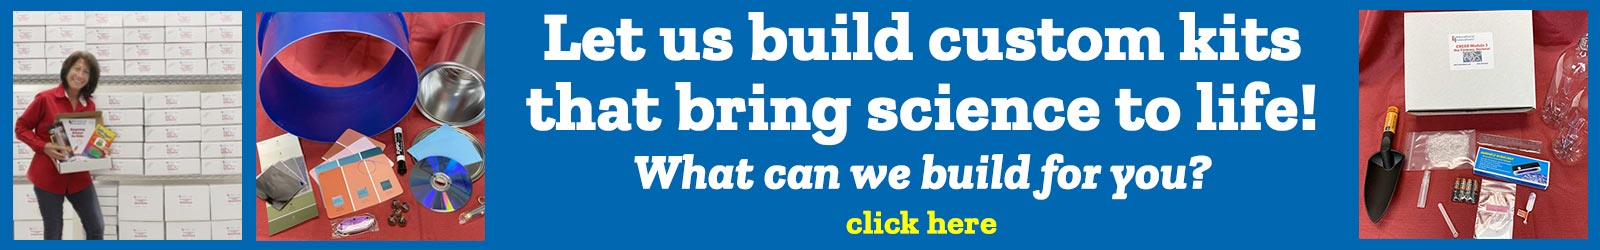 Let us build custom kits that bring science to life! What can we build for you?